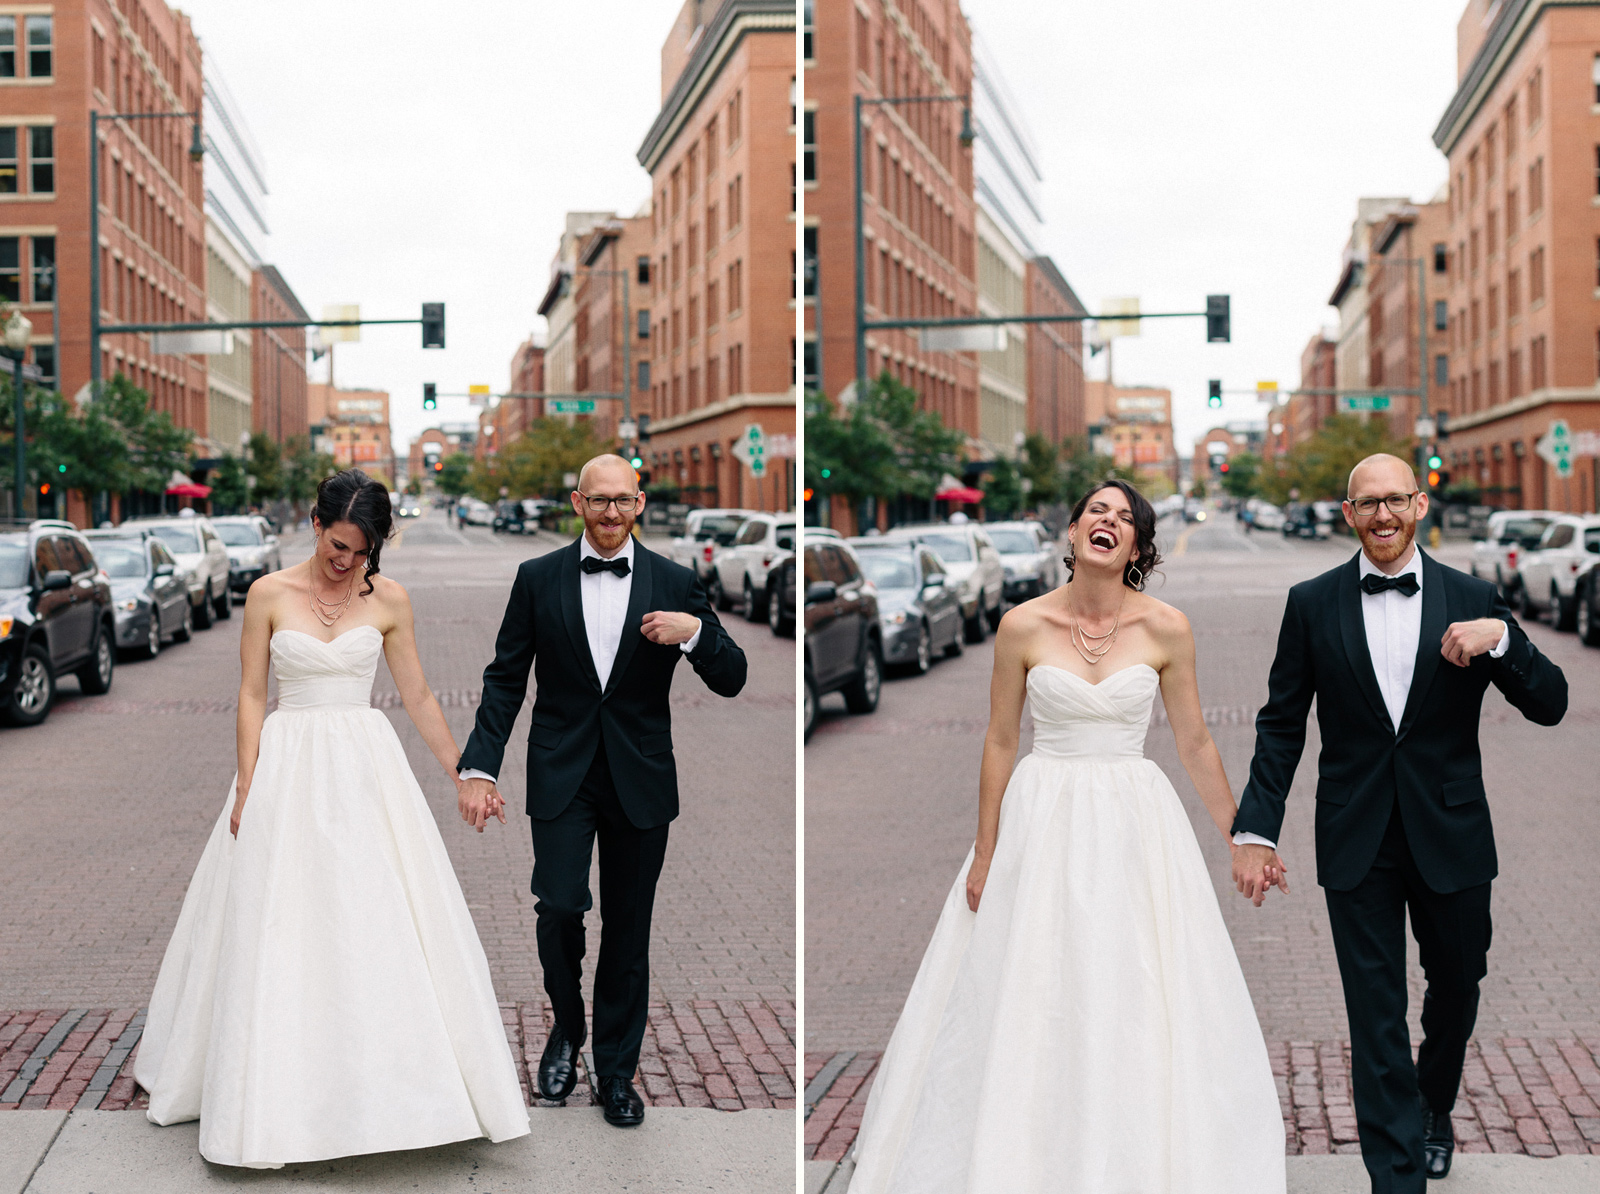 Coo-Hills-Wedding-Photographer-Downtown-Denver-Rebecc-and-Aaron-20.jpg